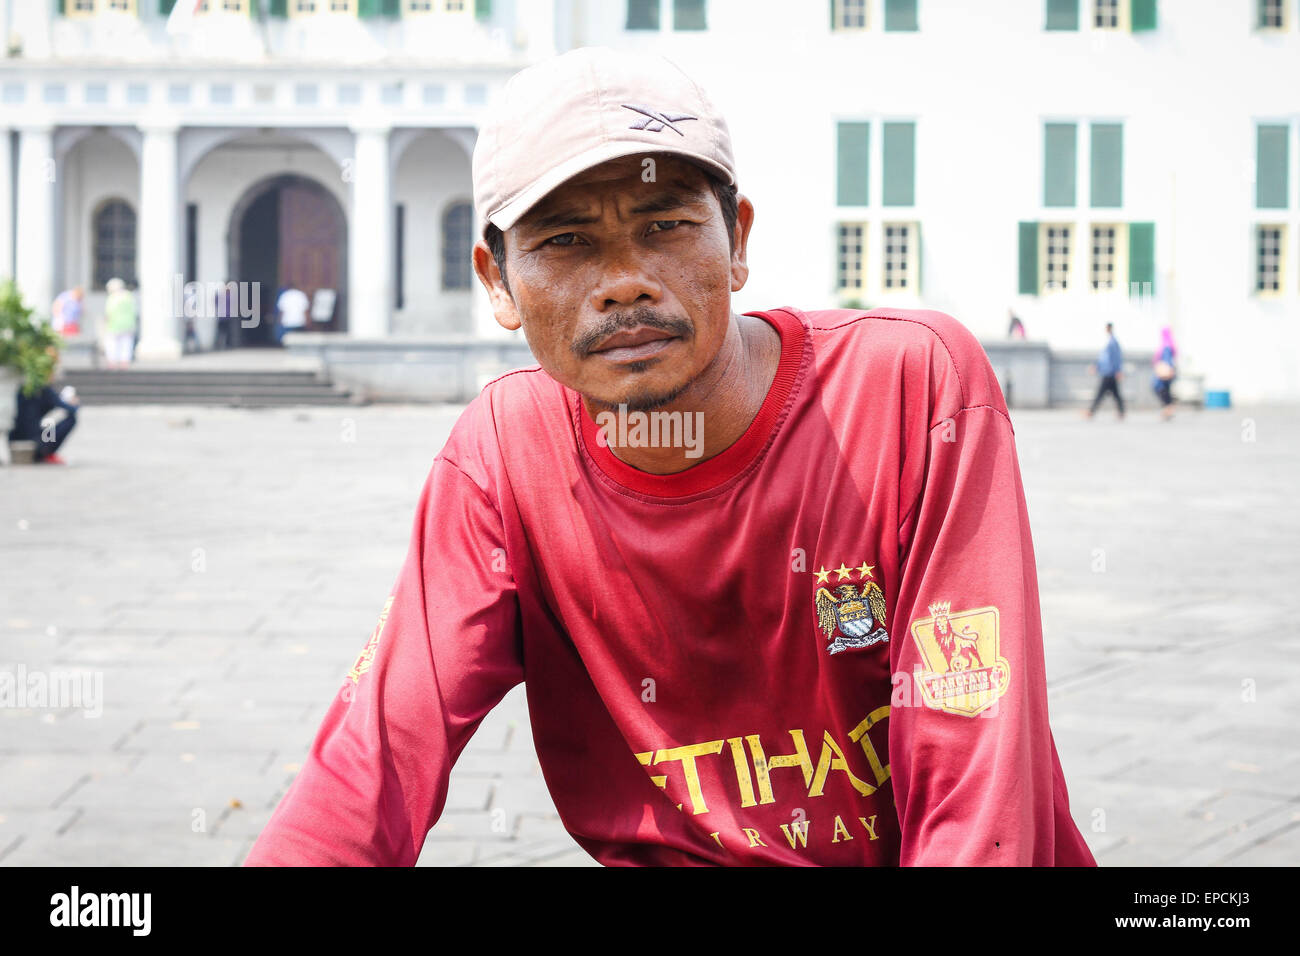 "Heri (43 ans) de Demak, Central Java. Il s'agit d'un vélo taxi rider, localement appelé ""ojek Photo Stock"